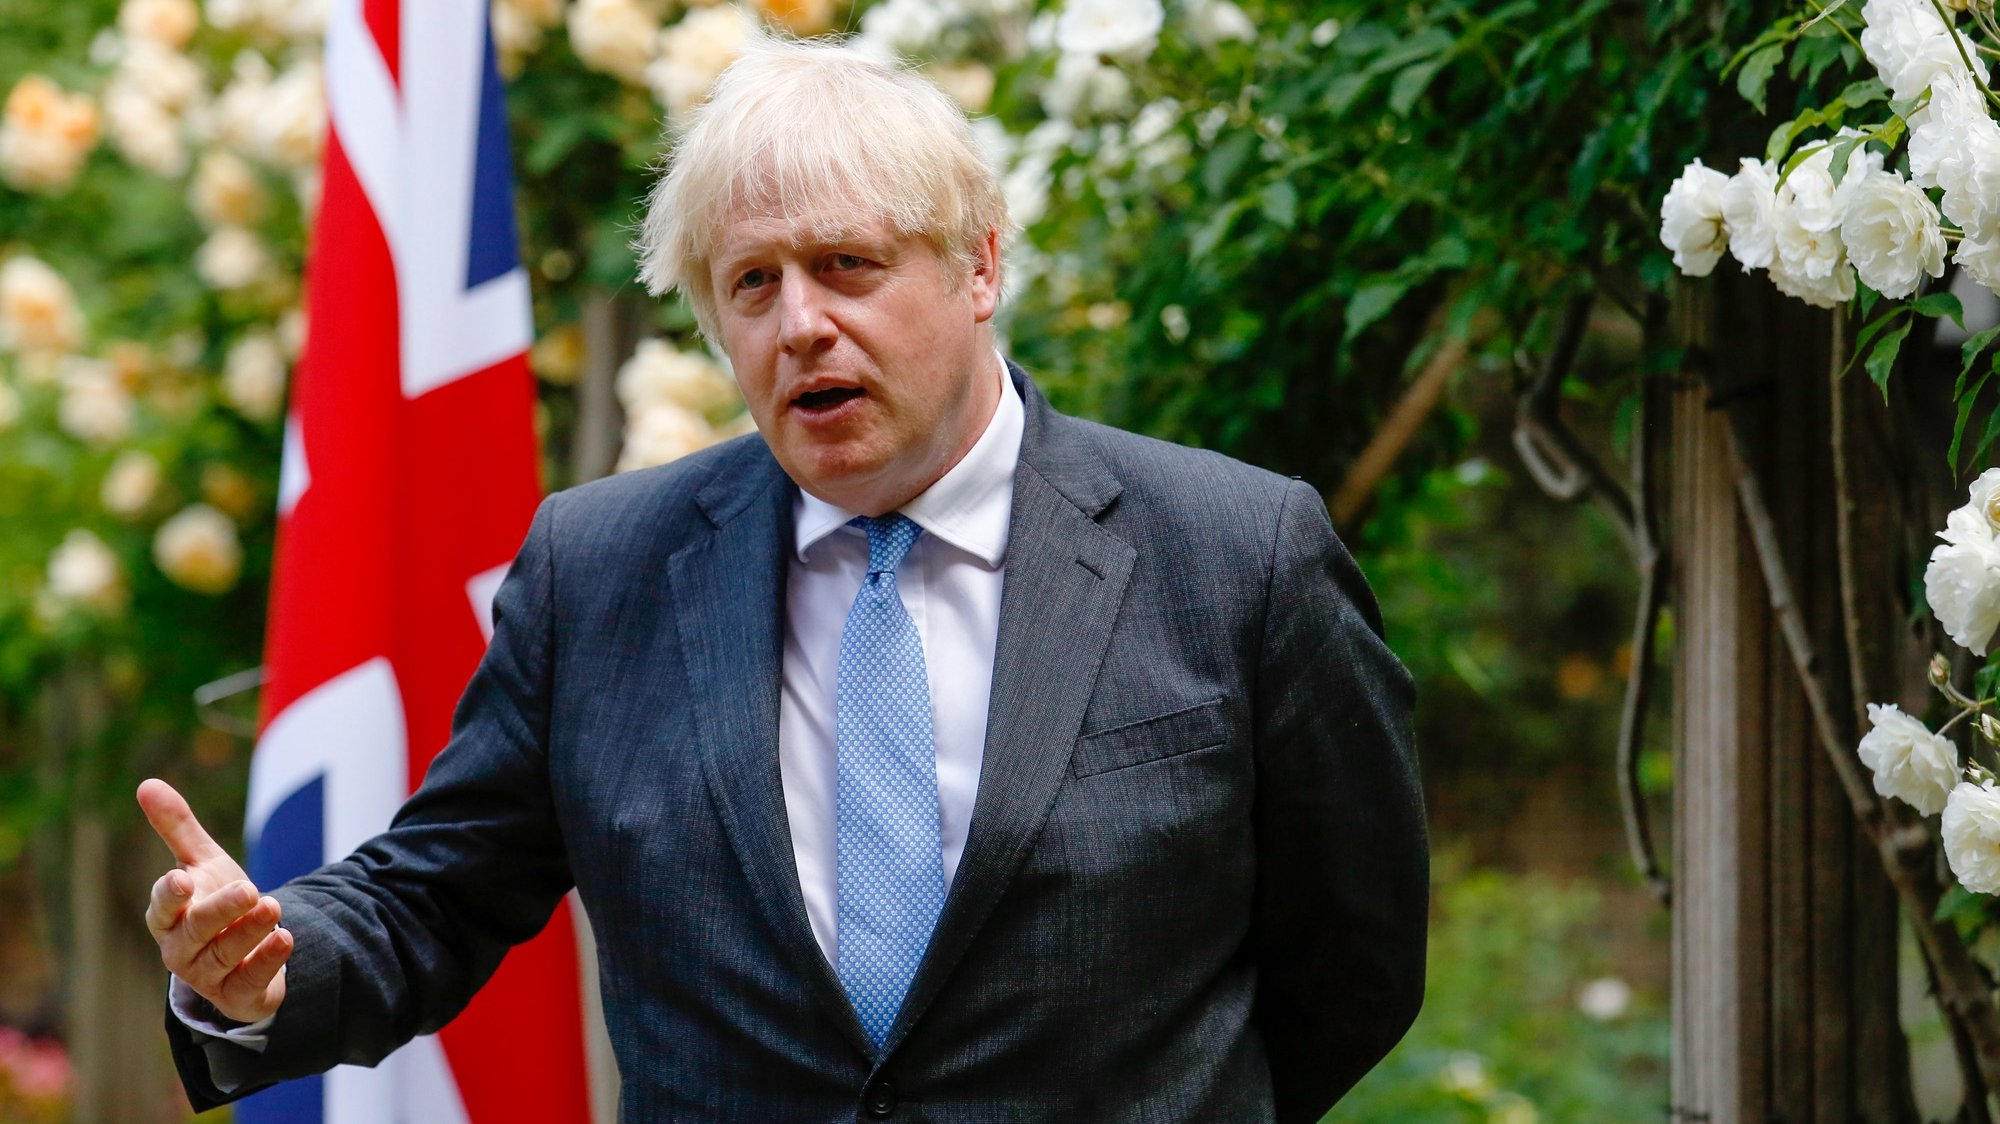 epa09272673 British Prime Minister Boris Johnson, gestures during a joint news conference with Australian counterpart Scott Morrison, during their bilateral meeting in the garden of number 10 Downing Street in London, Britain, 15 June 2021. The U.K. is set to announce the broad terms of a free-trade deal with Australia on 15 June, its latest post-Brexit accord as Prime Minister Boris Johnson seeks to expand commerce beyond the European Union.  EPA/Luke MacGregor / POOL